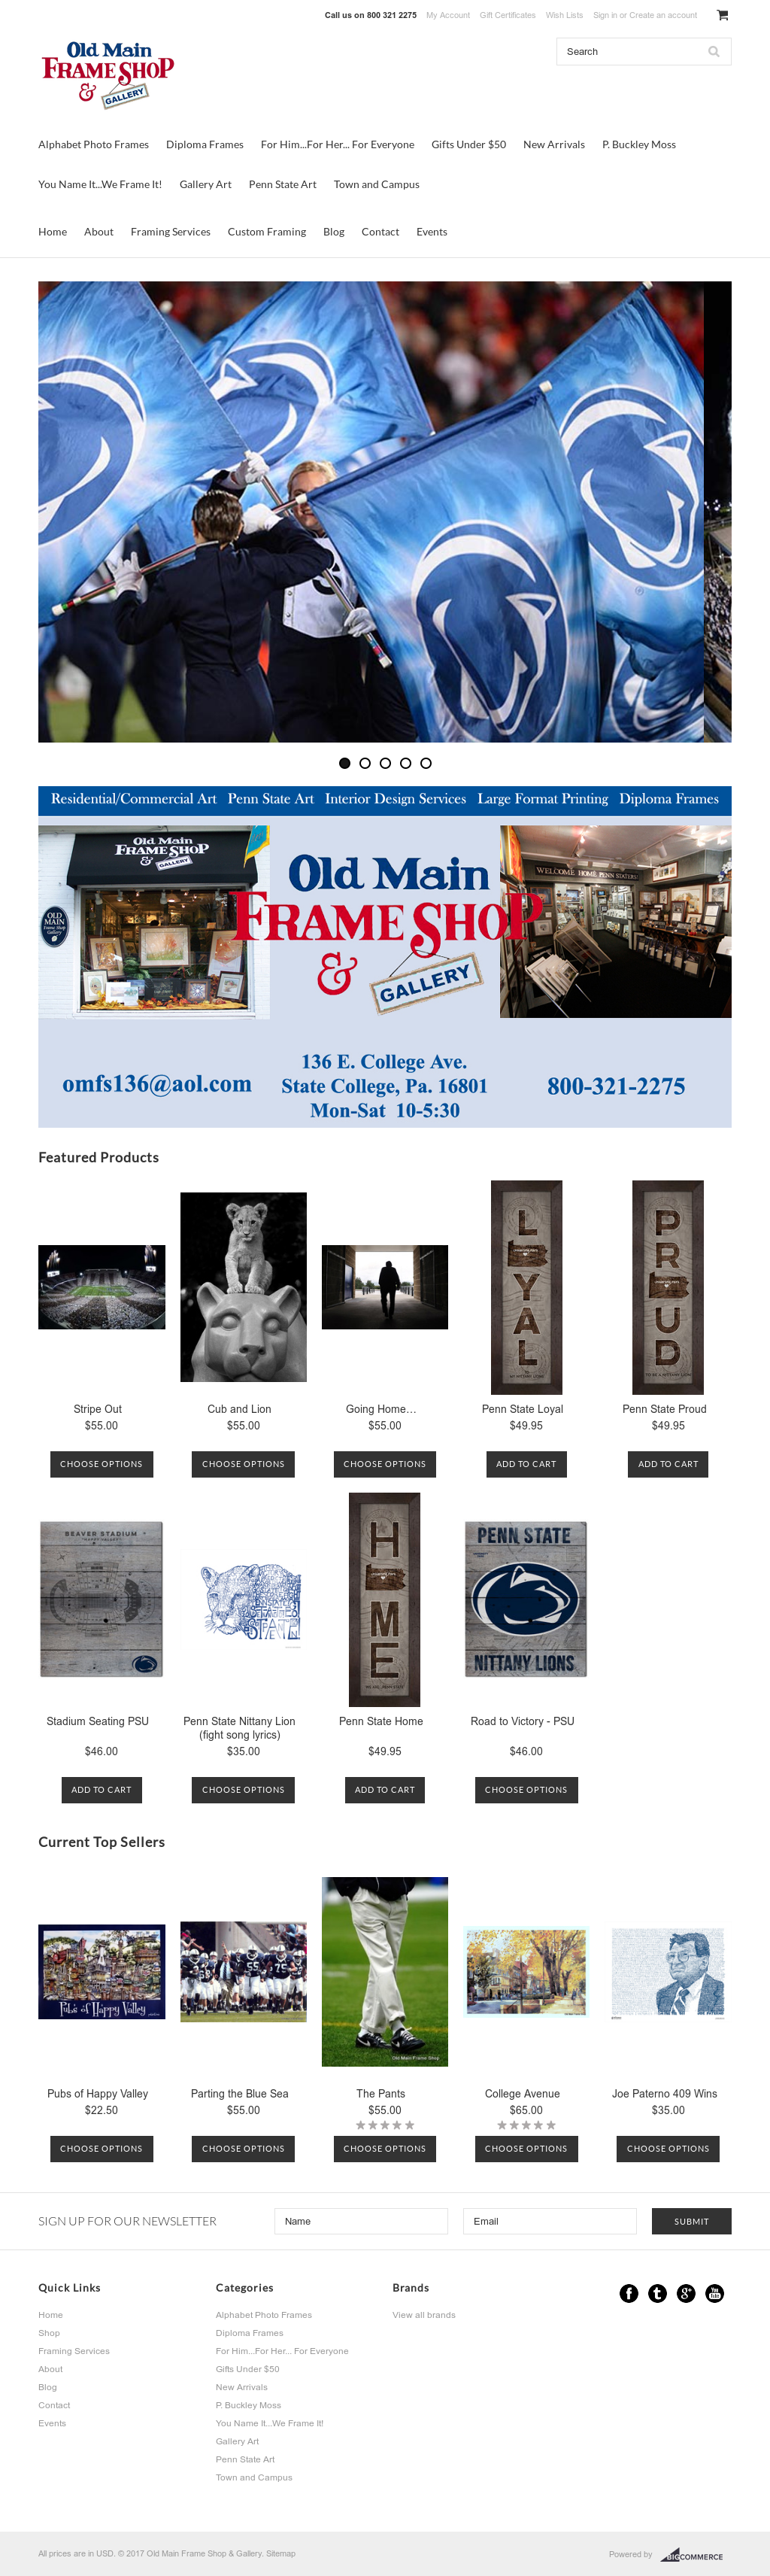 Old Main Frame Shop & Gallery Competitors, Revenue and Employees ...